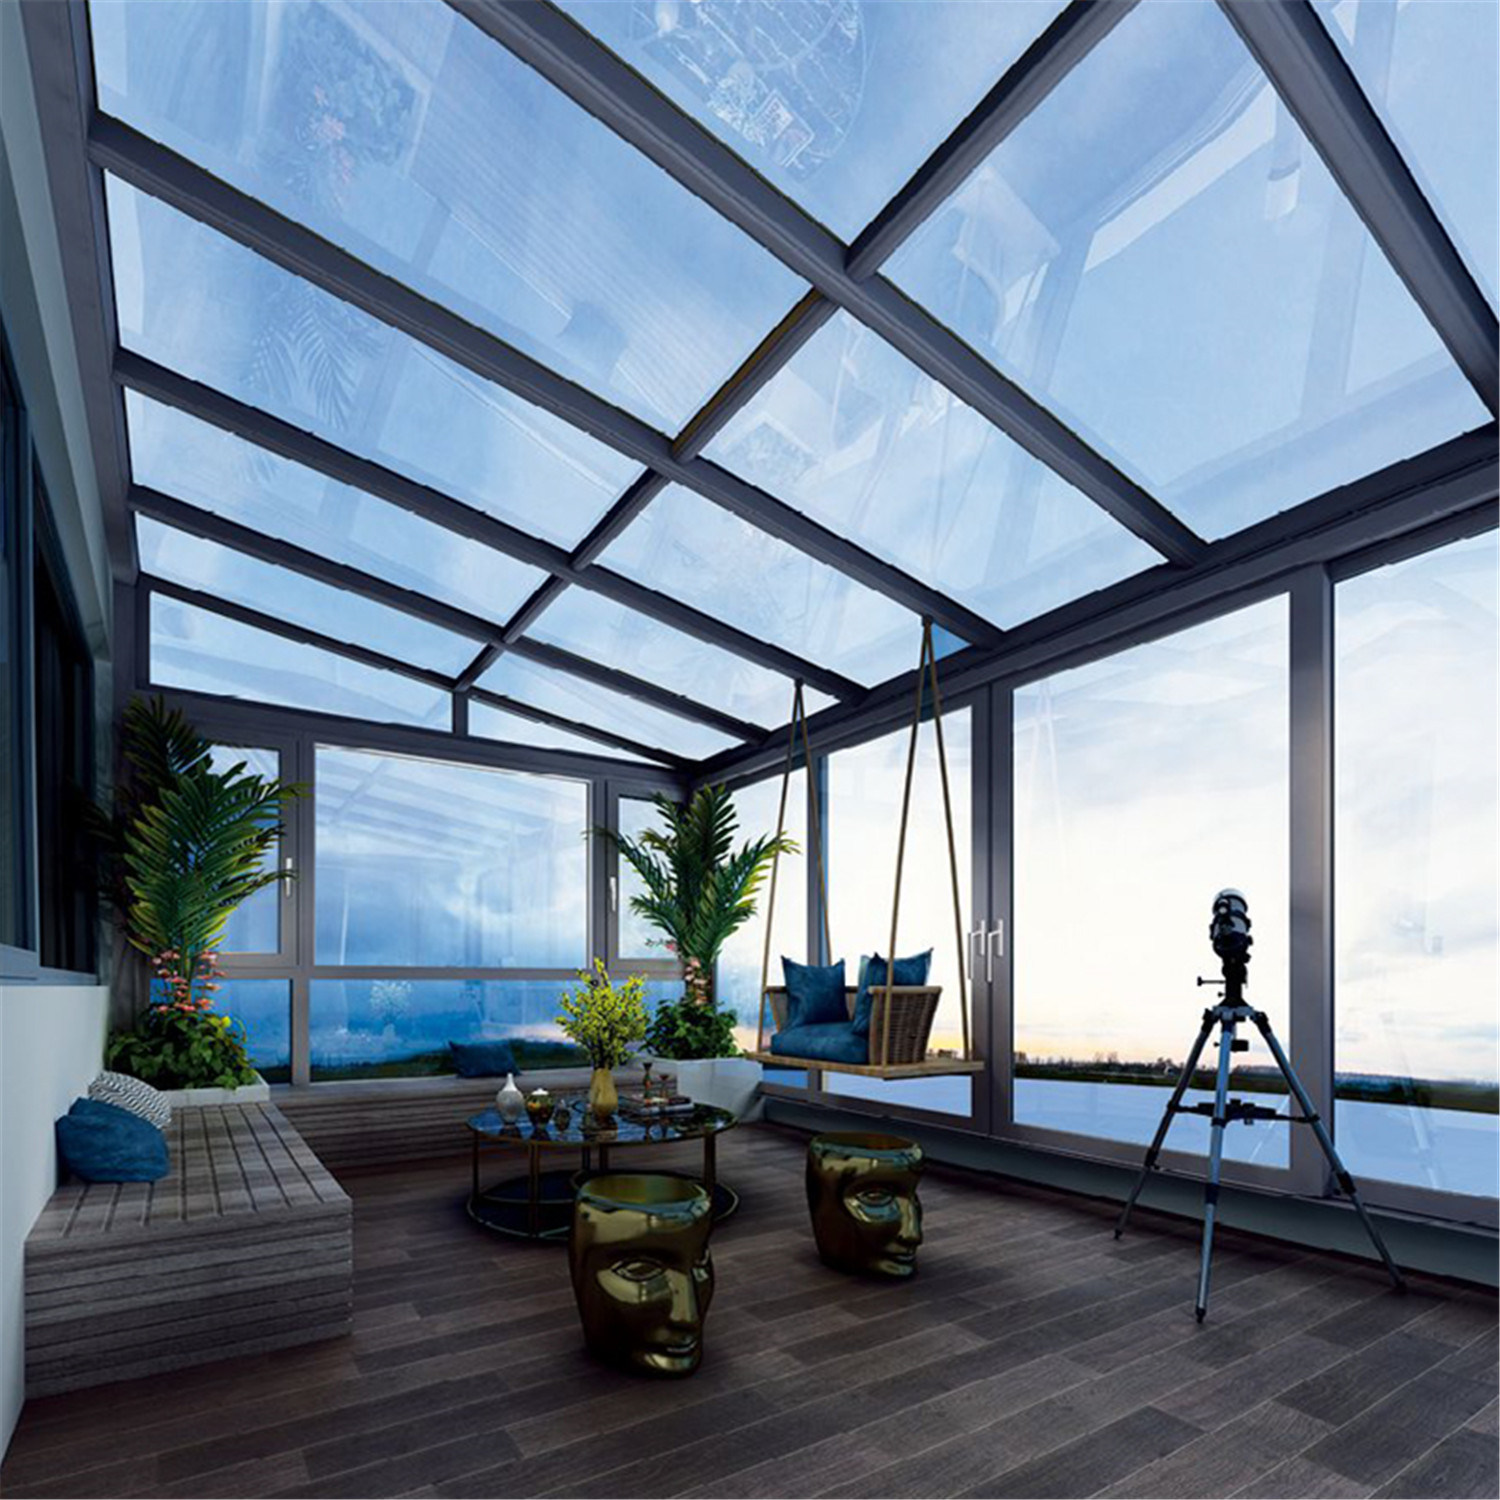 China Aluminum Alloy Frame Material And Tempered Glass Roof Material Garden Conservatory Sunroom Glass Room Garden Room China Sunroom House